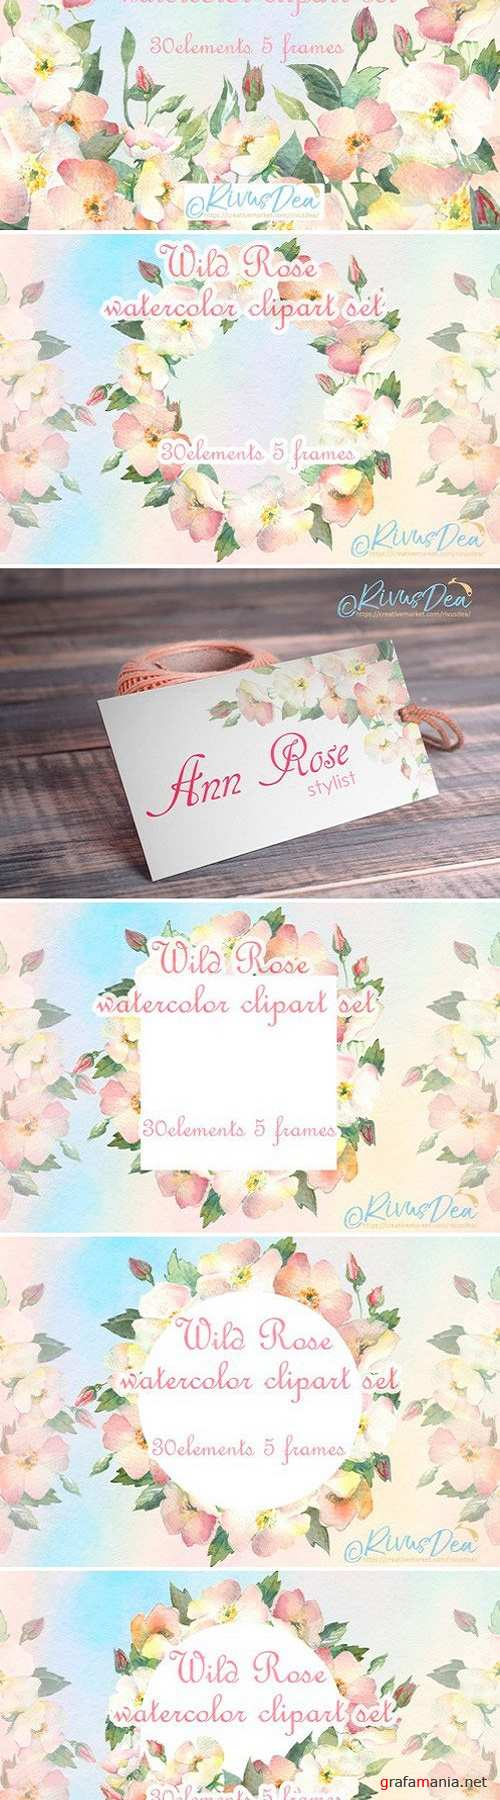 Watercolor wild dog rose clipart set 2515098